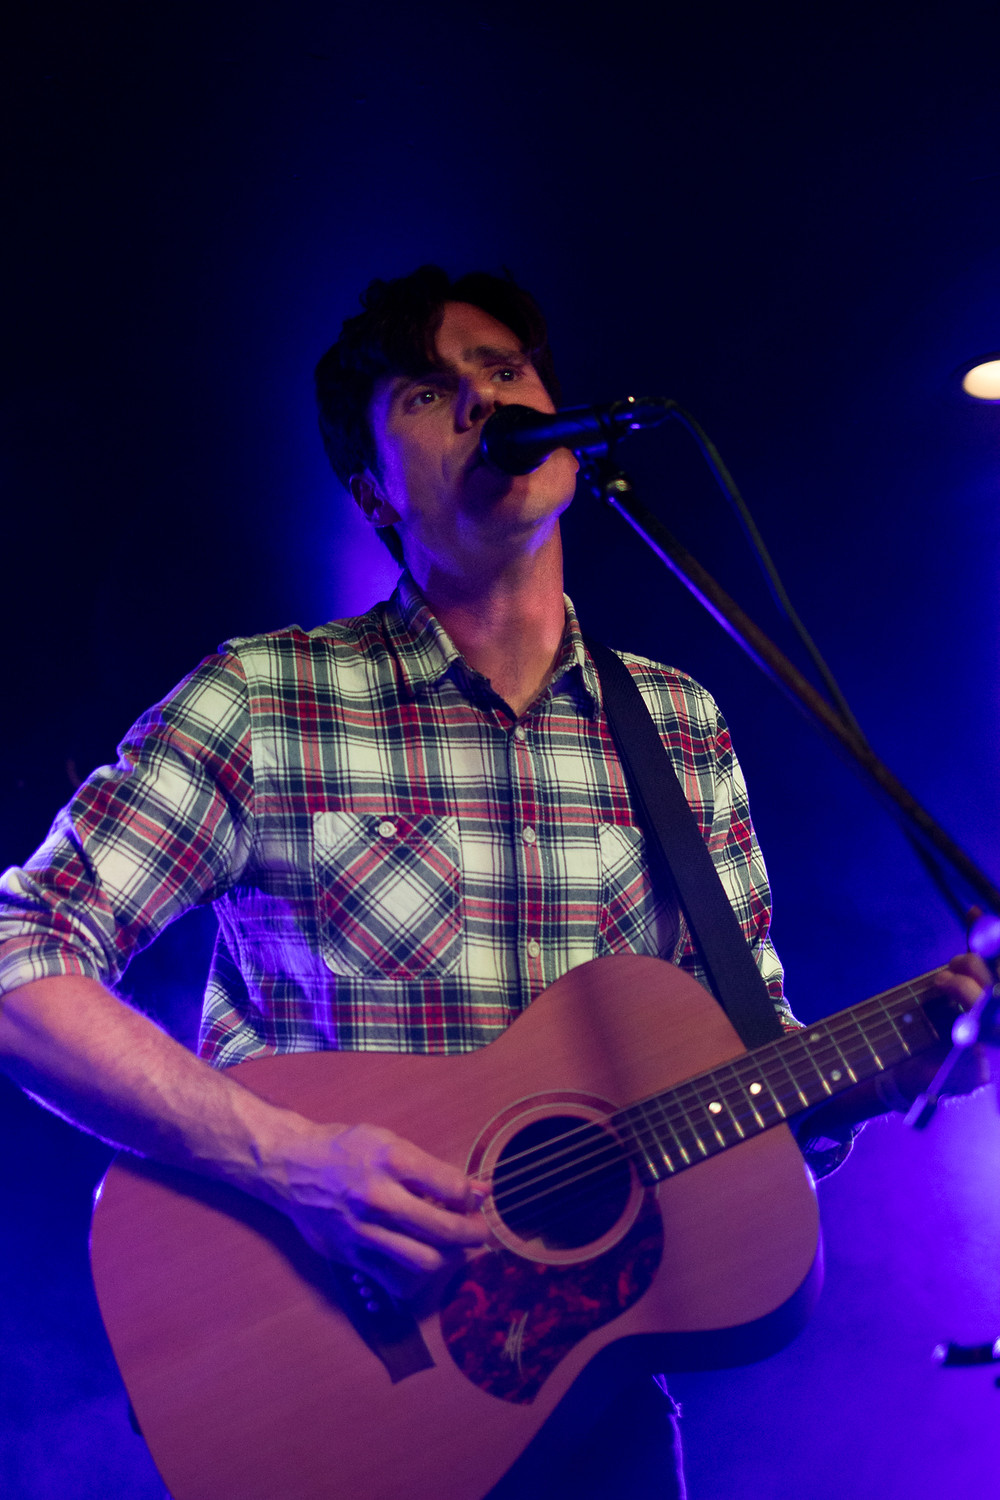 Jimmy Eat World, The Wayfarer, Costa Mesa, Acoustic, Concert, Concert Photography, Live Music